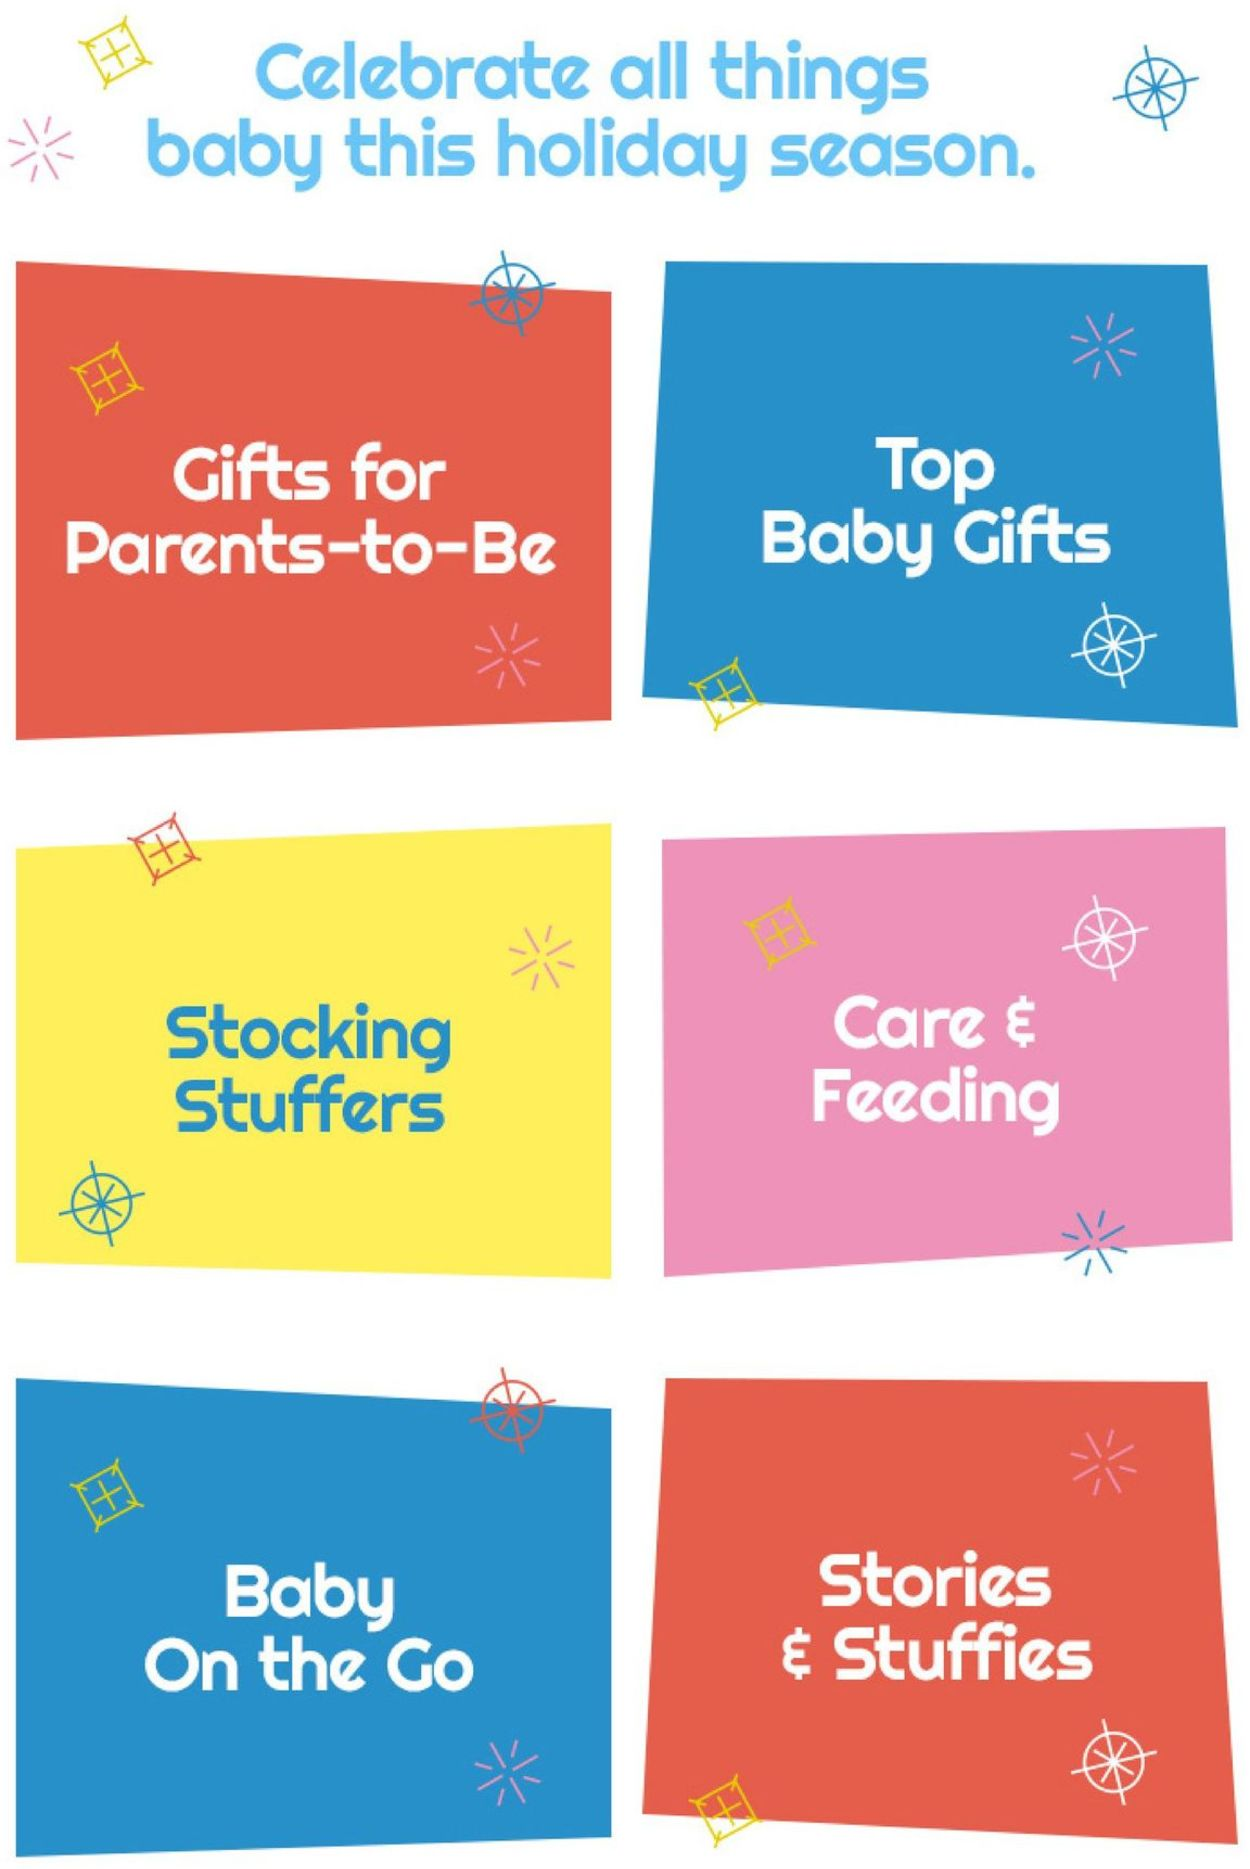 Toys''R''Us - Holiday 2020 Flyer - 11/12-11/18/2020 (Page 2)